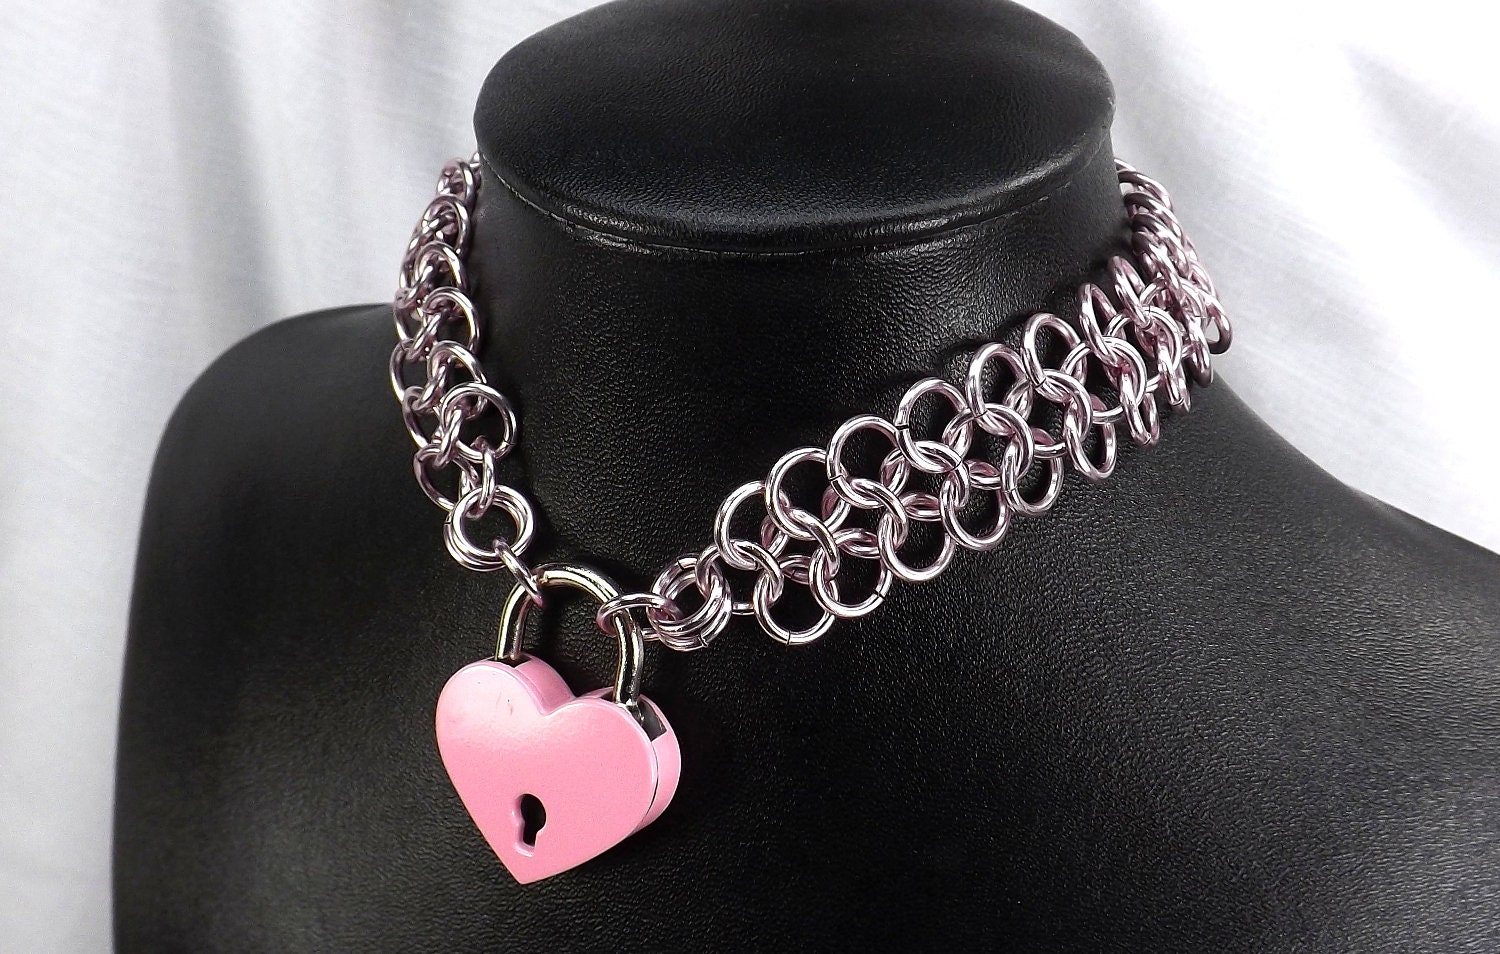 Pink locking heart with pink chain choker. Handmade chain with pink lock and key chain choker babygirl ddlg jewelry gift for her - product images  of